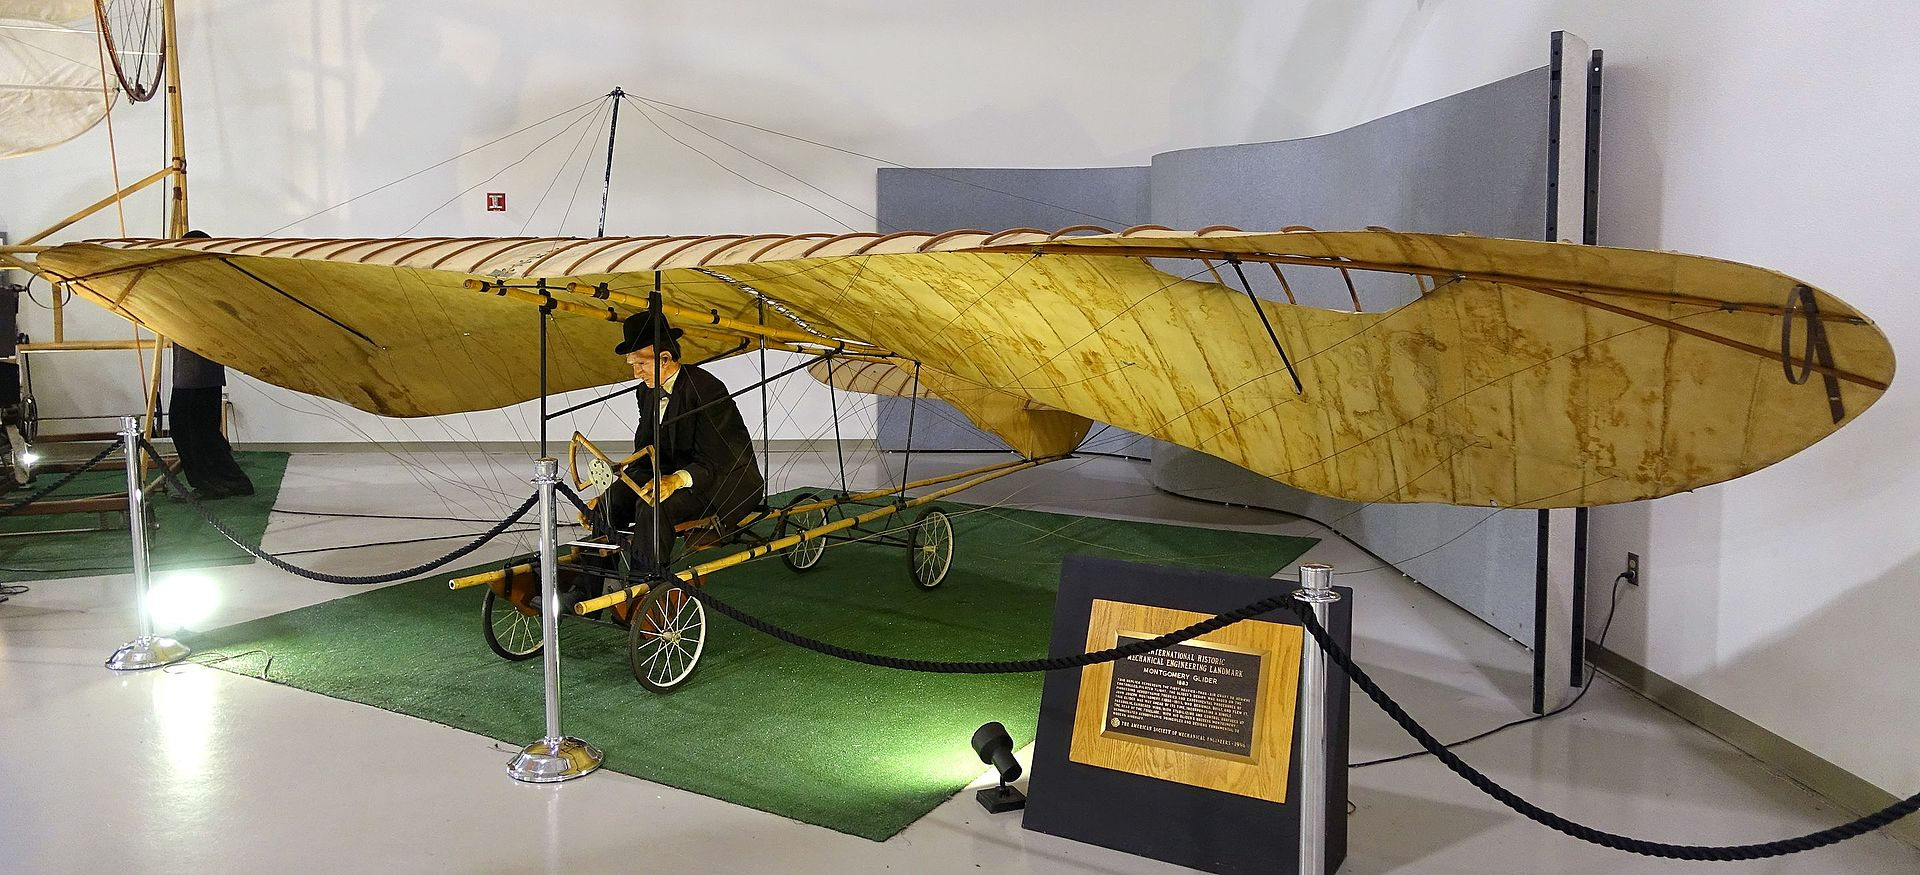 Replica of The Evergreen at the Hiller Aviation Museum (San Carlos, CA).